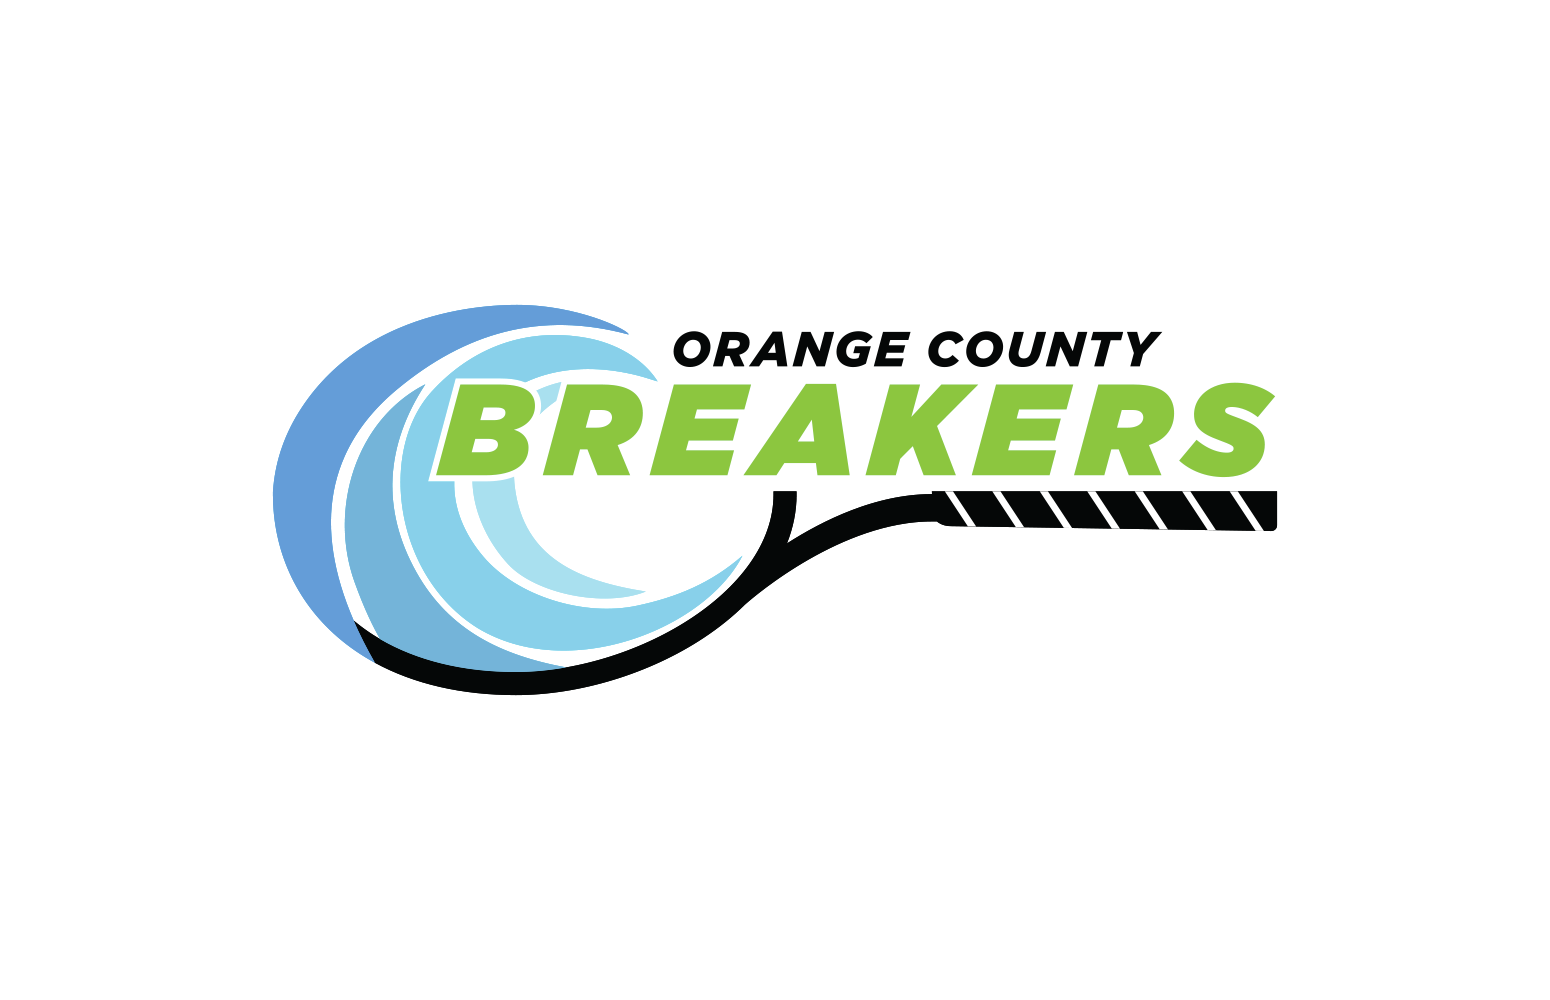 Orange County Breakers